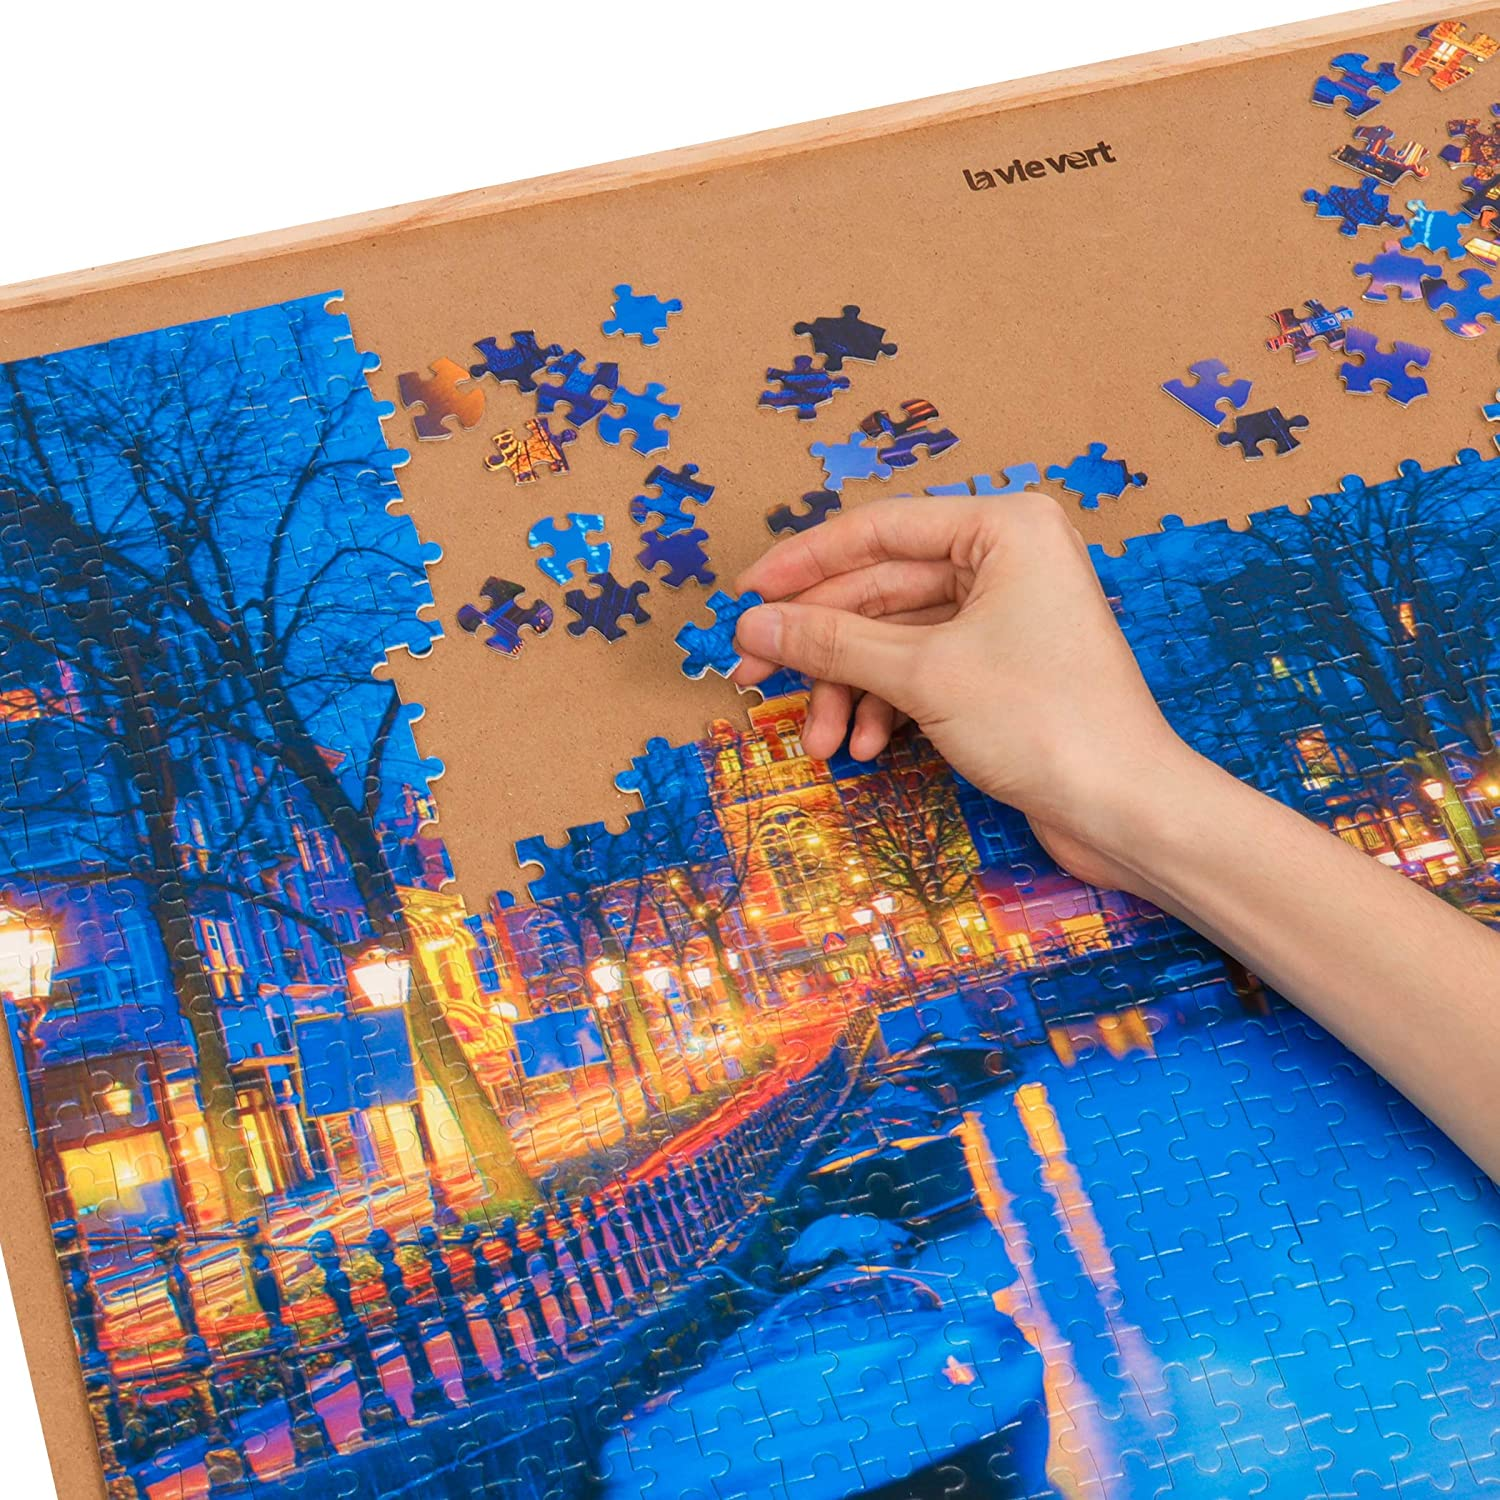 Lavievert 1000 Piece Jigsaw Puzzles Amsterdam in The Night Puzzle for Adults and Families